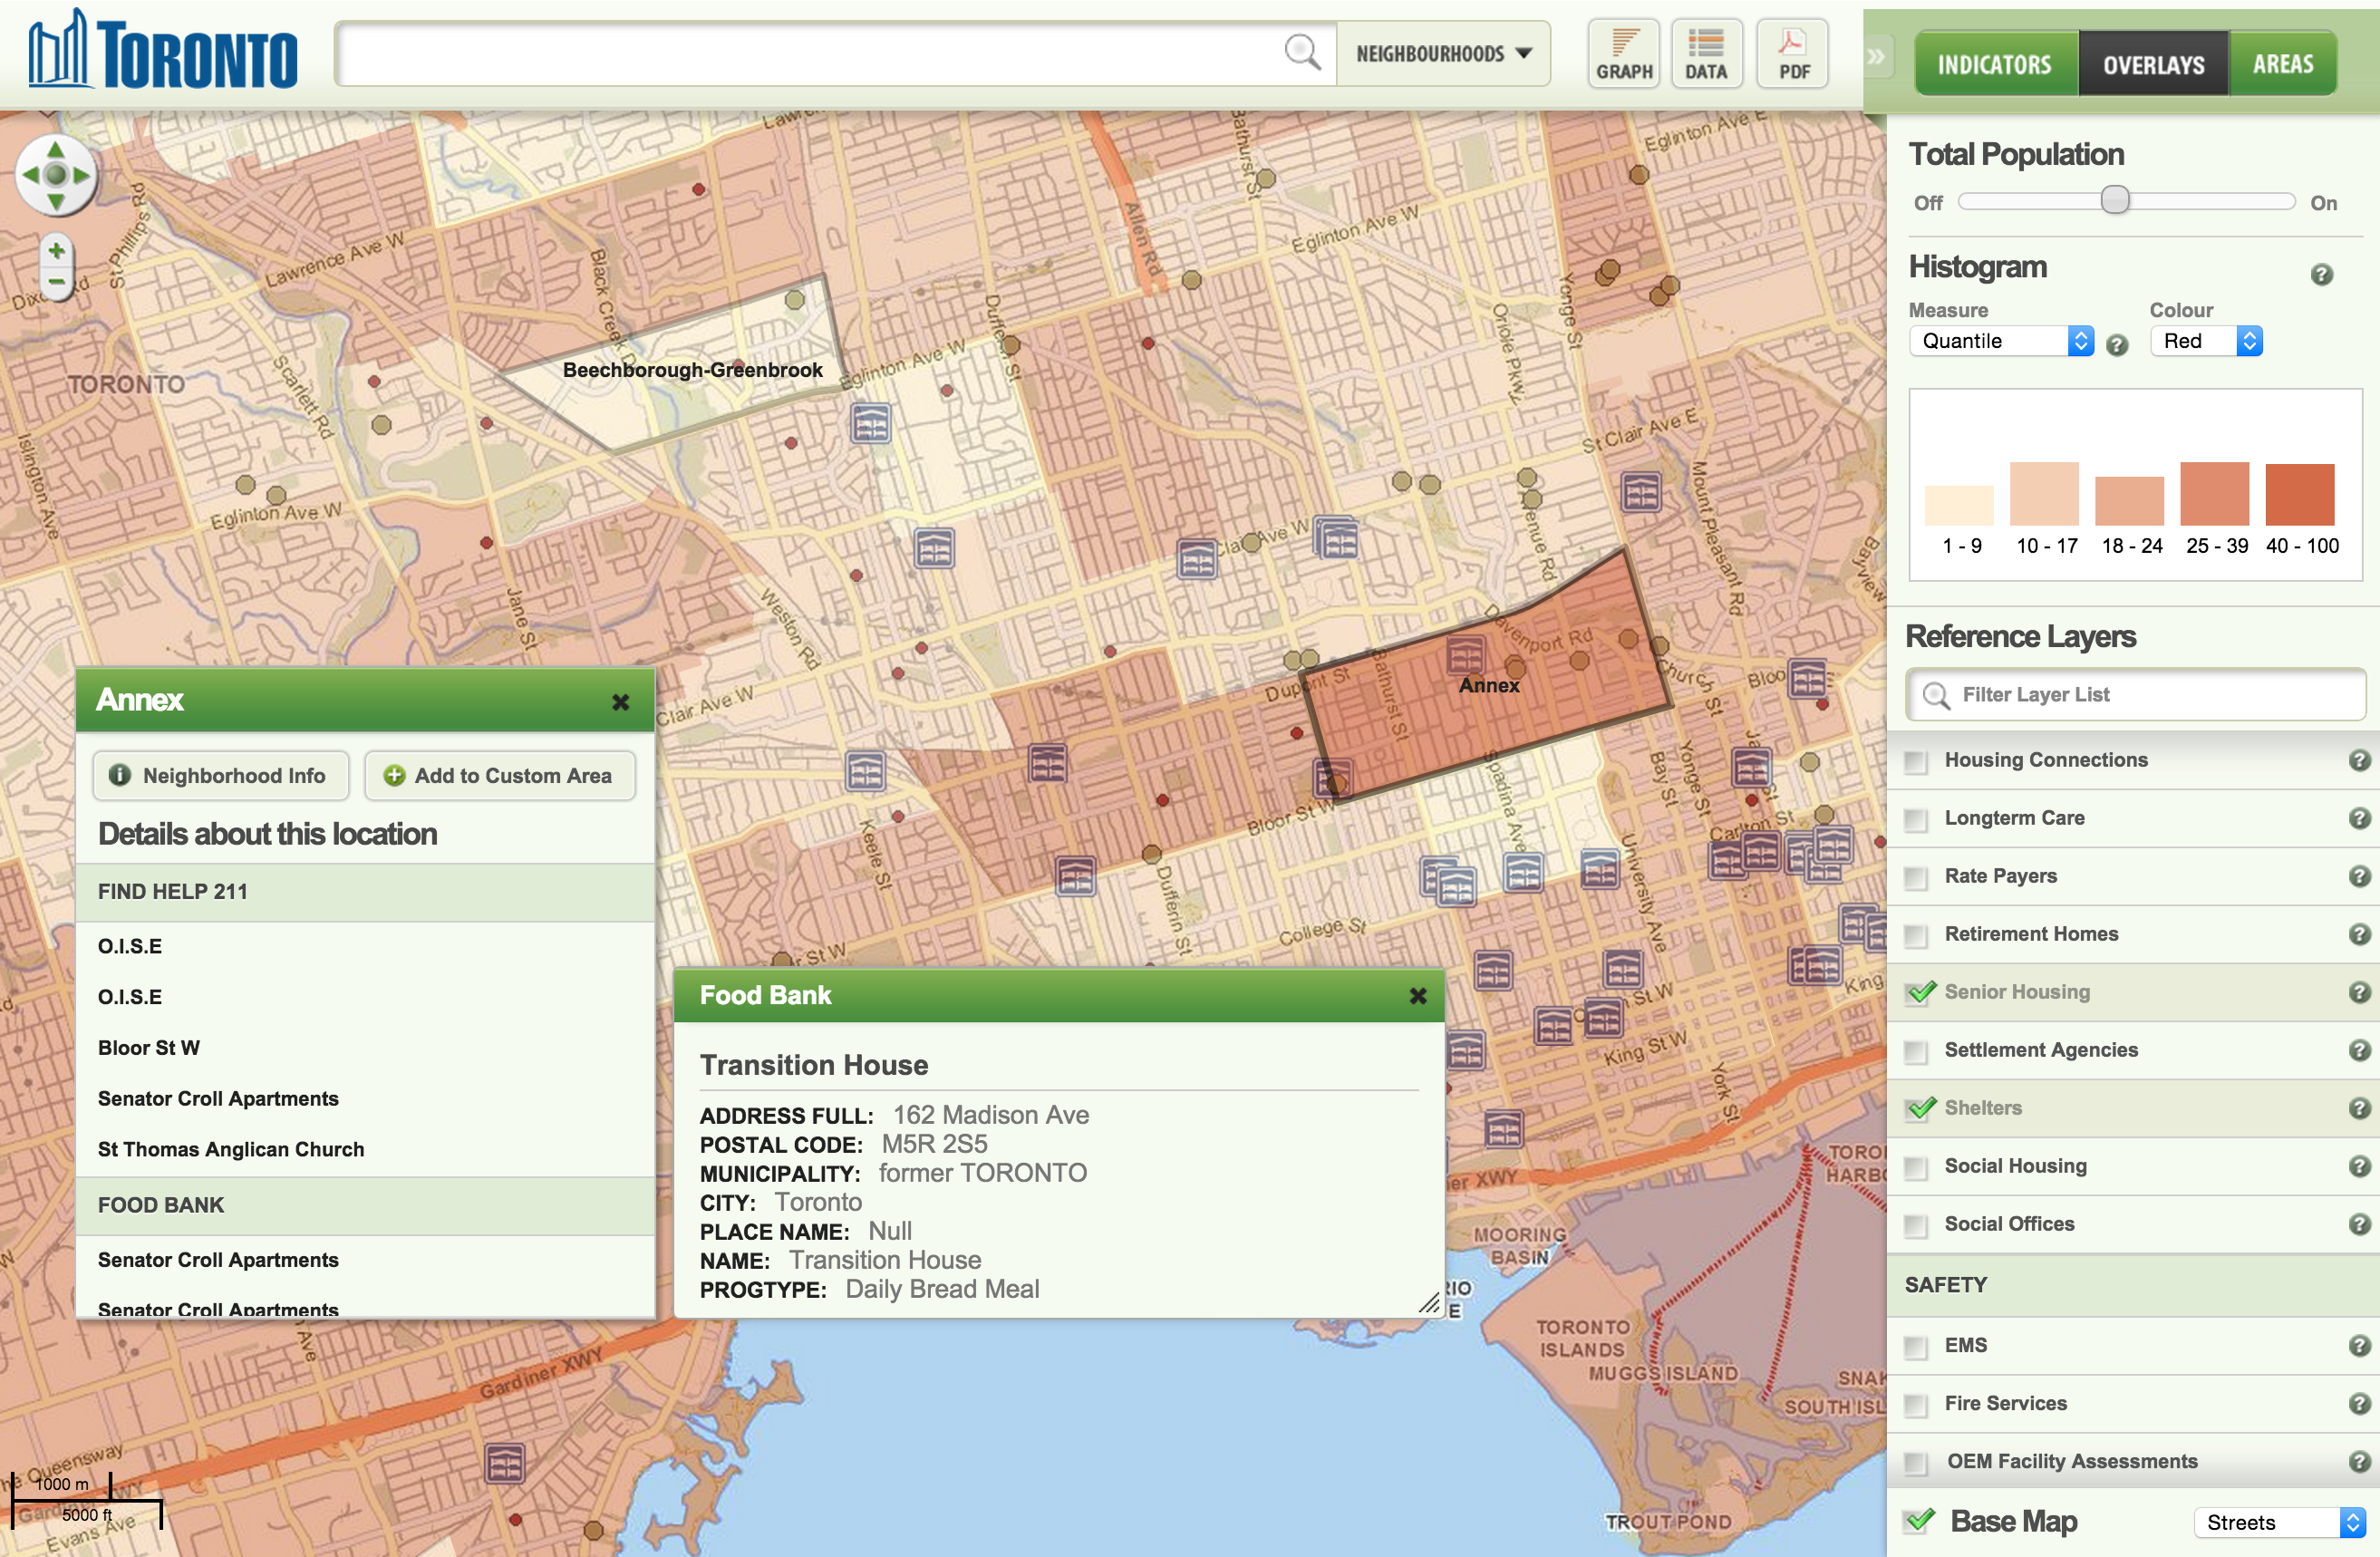 Wellbeing Toronto's data dashboard can show health indicators and other population-related data alongside community resource directory data provided by the region's 2-1-1. (Notably, this app was developed before the Open211 API made it possible to query up-to-date resource directory data in real-time.)